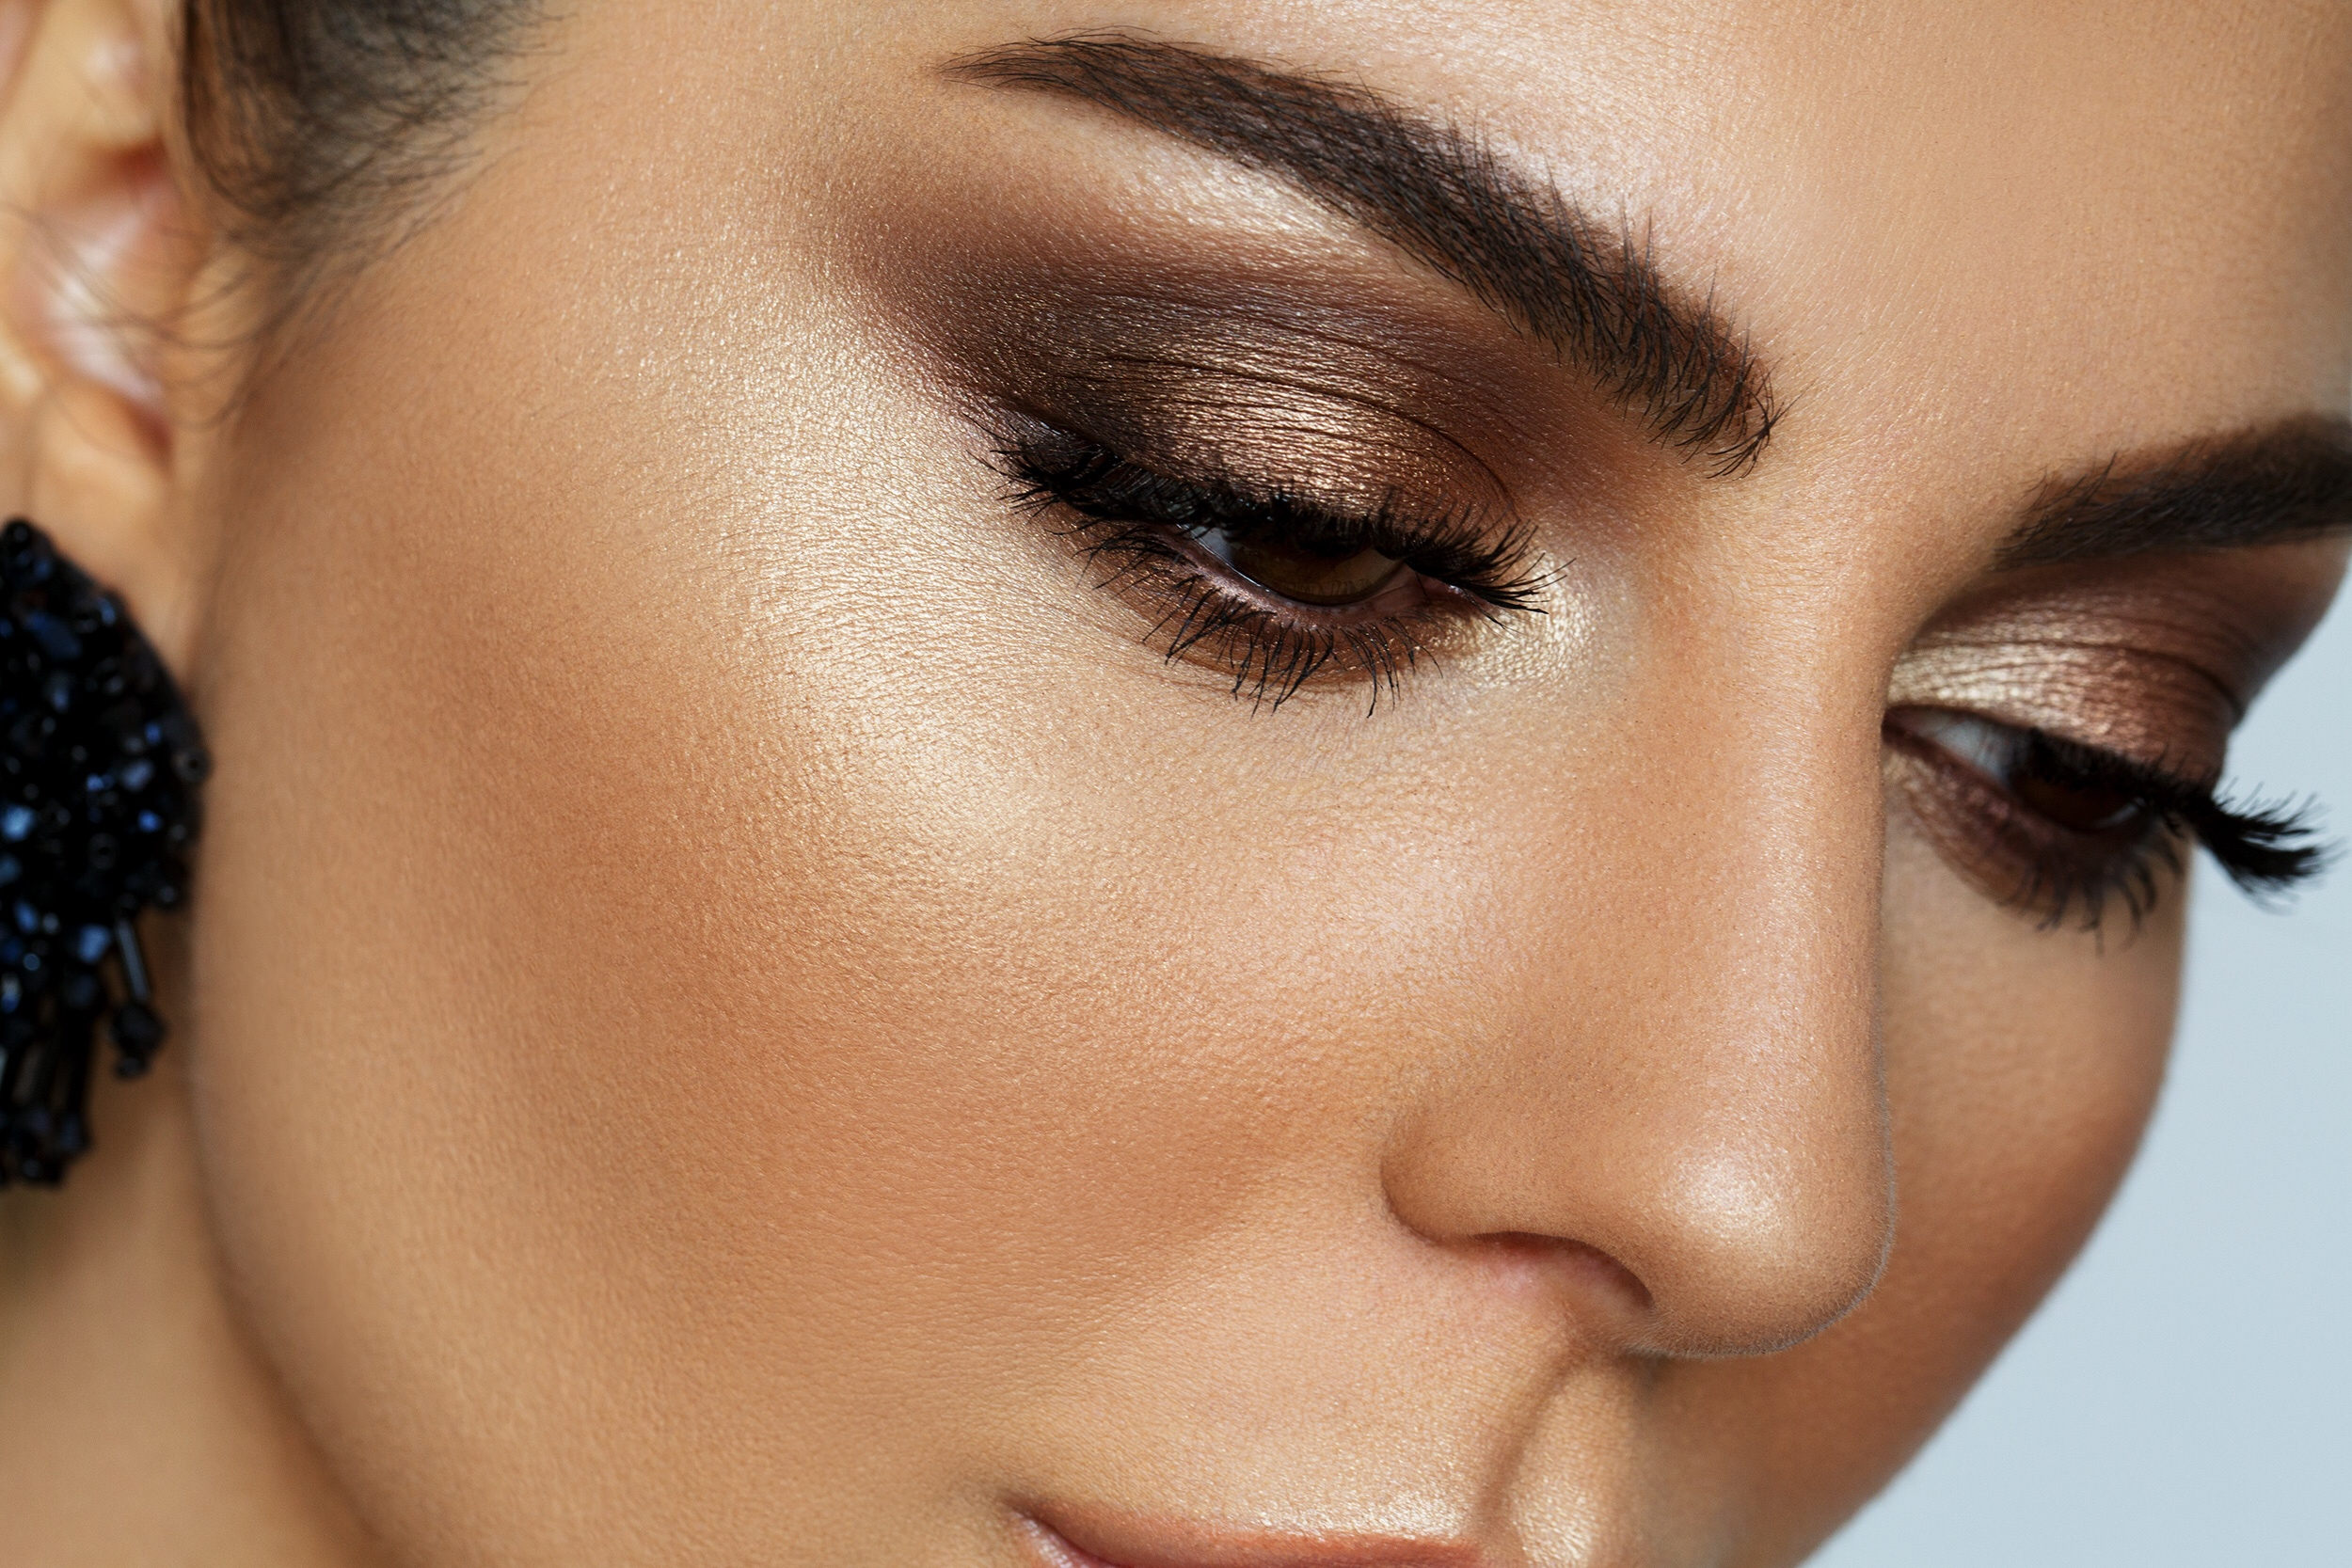 How To Make Eyebrows Look Natural With Makeup